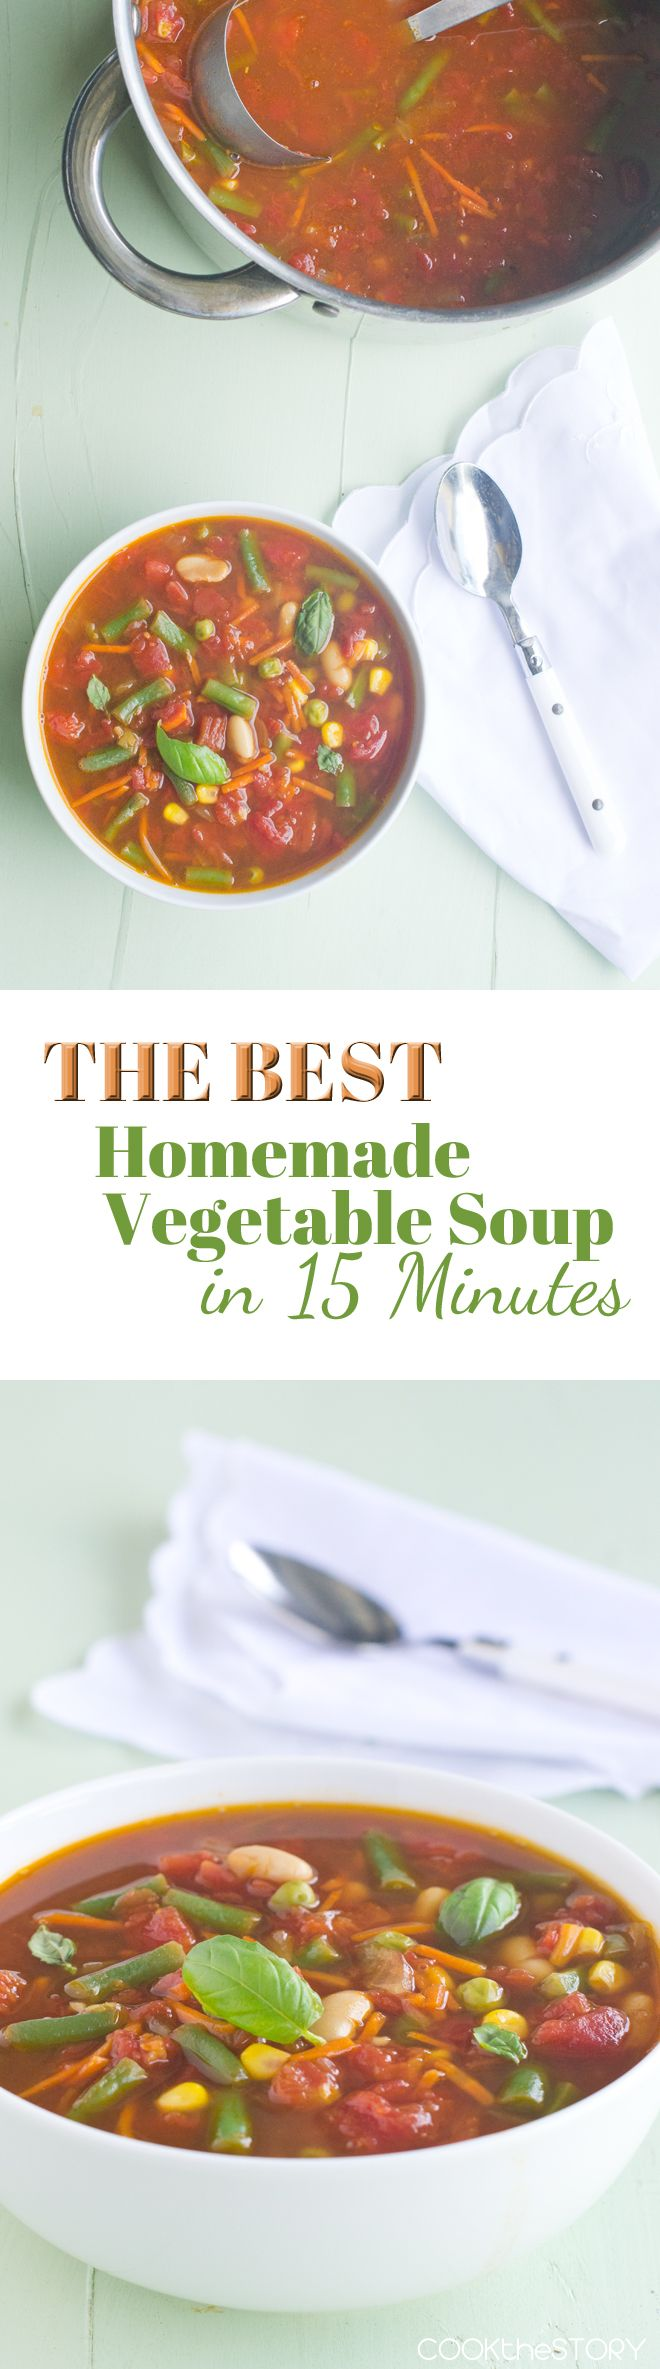 Easy, Homemade Vegetable Soup Recipe, made in just 15 Minutes - on COOKtheSTORY.com